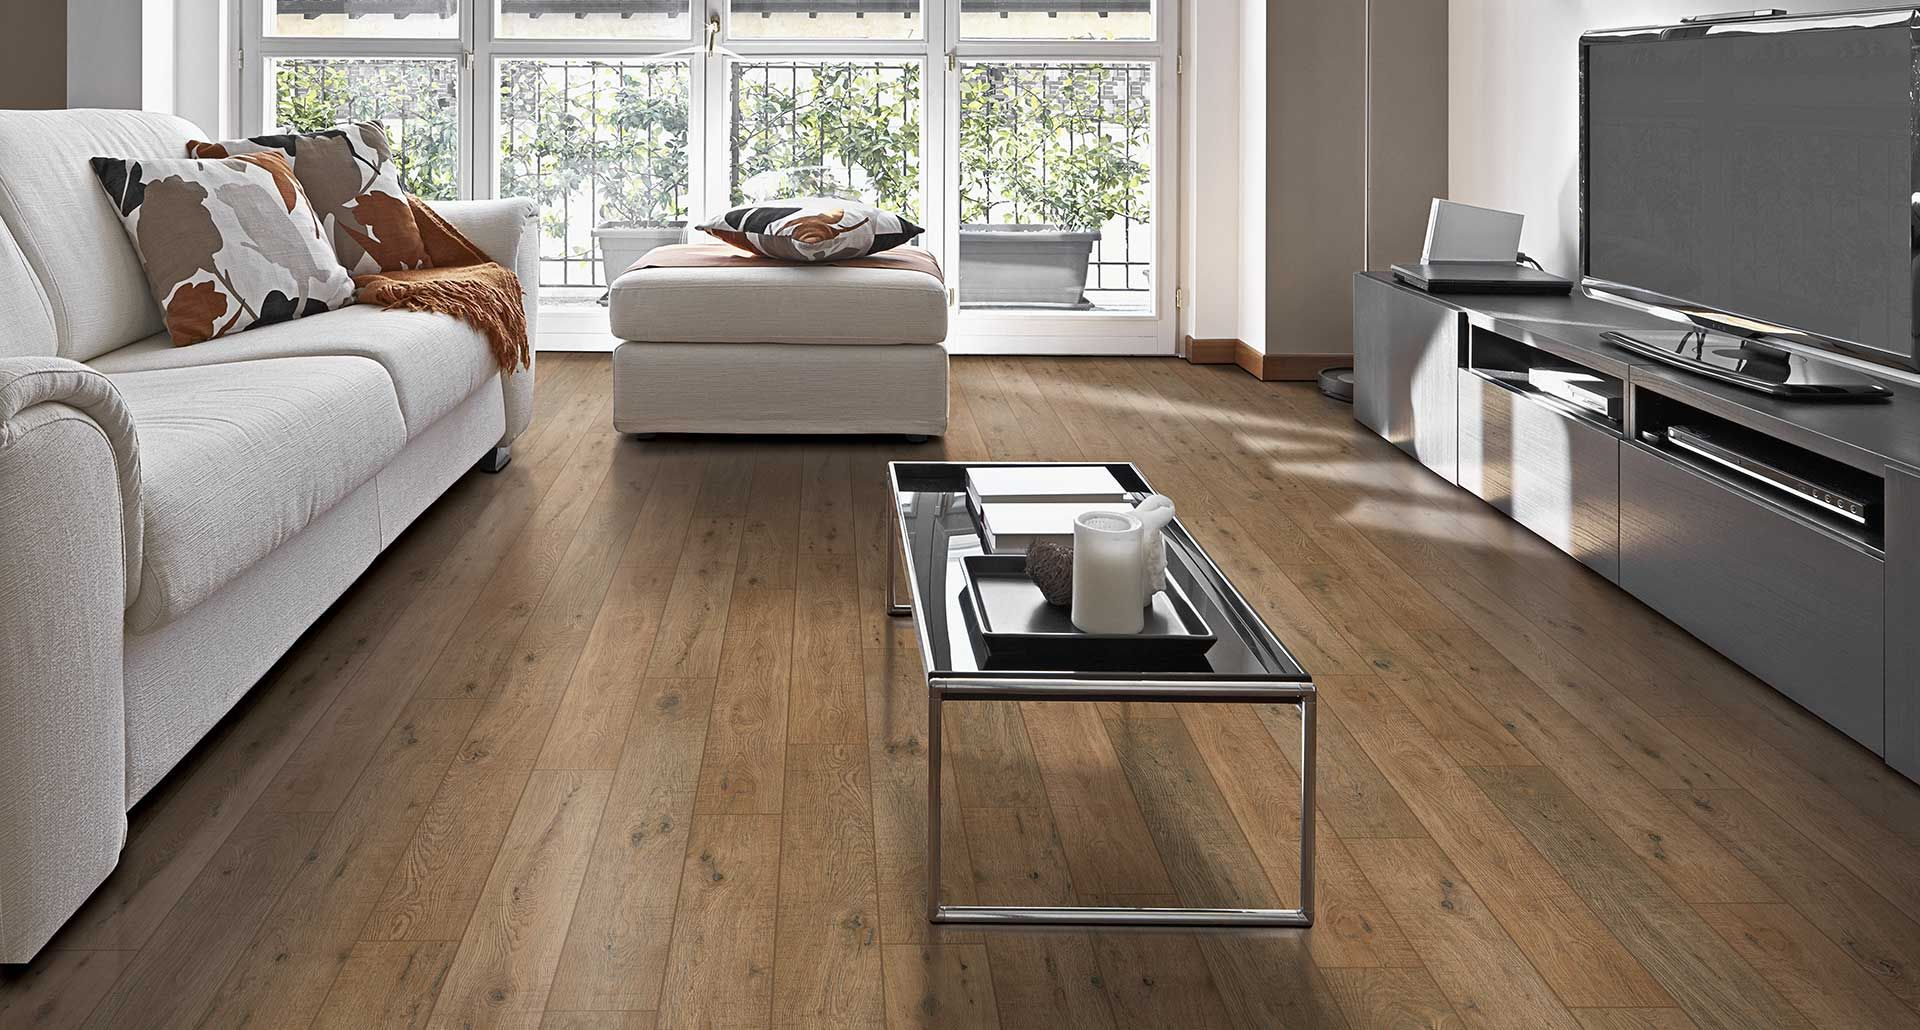 Nashville oak pergo max laminate flooring pergo for Pergo flooring